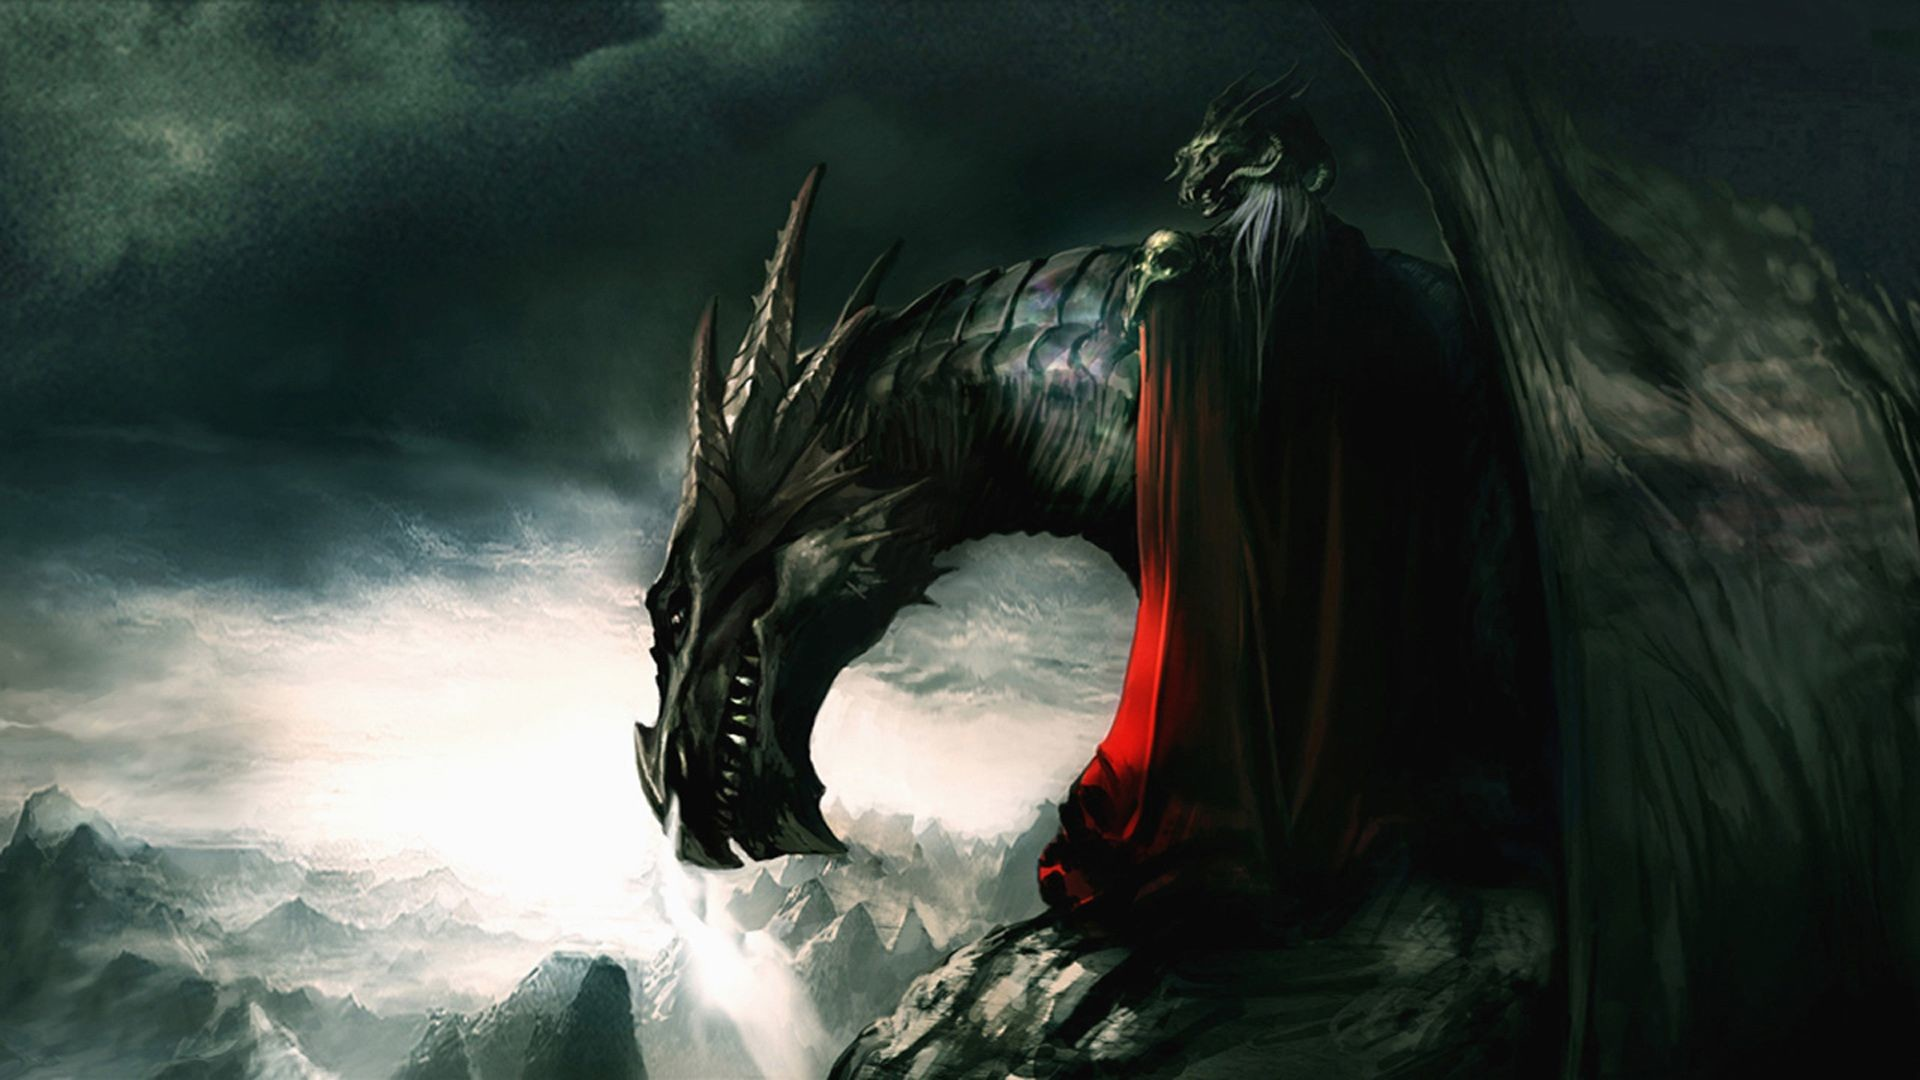 HD Imagine Dragons Wallpapers Download Free 1920×1080 Dragon Image  Wallpapers (31 Wallpapers)